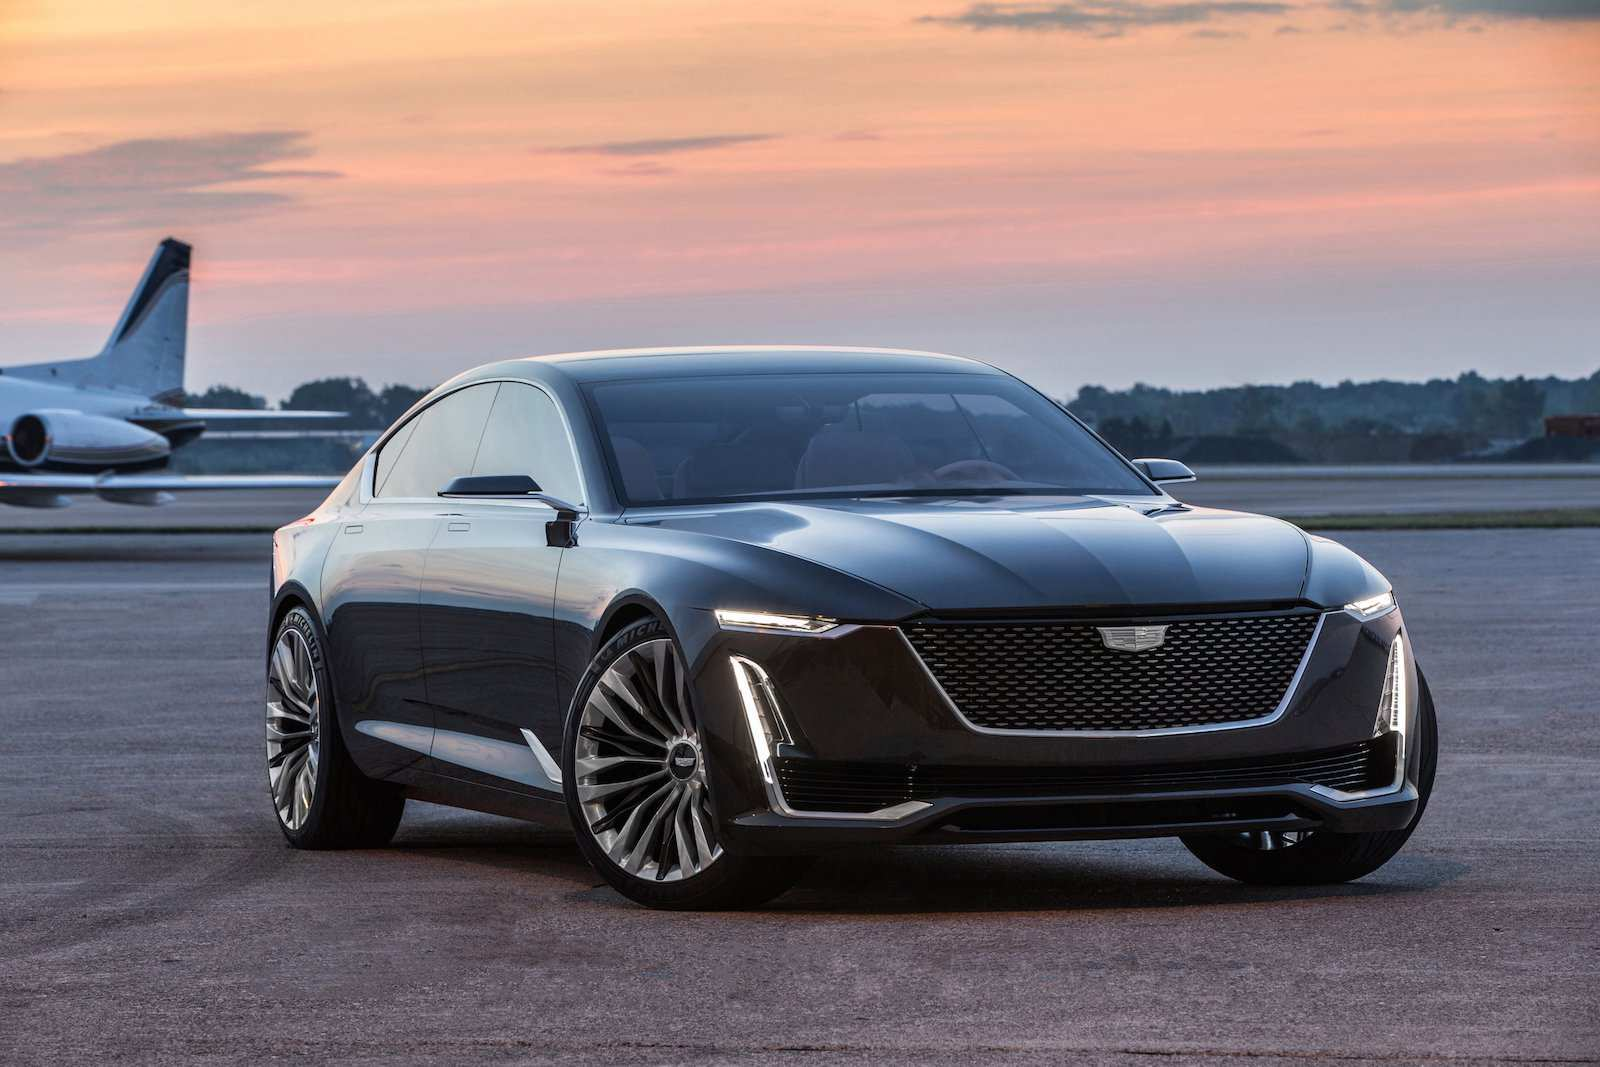 33 All New 2020 Cadillac Ct5 Release Date Pricing with 2020 Cadillac Ct5 Release Date